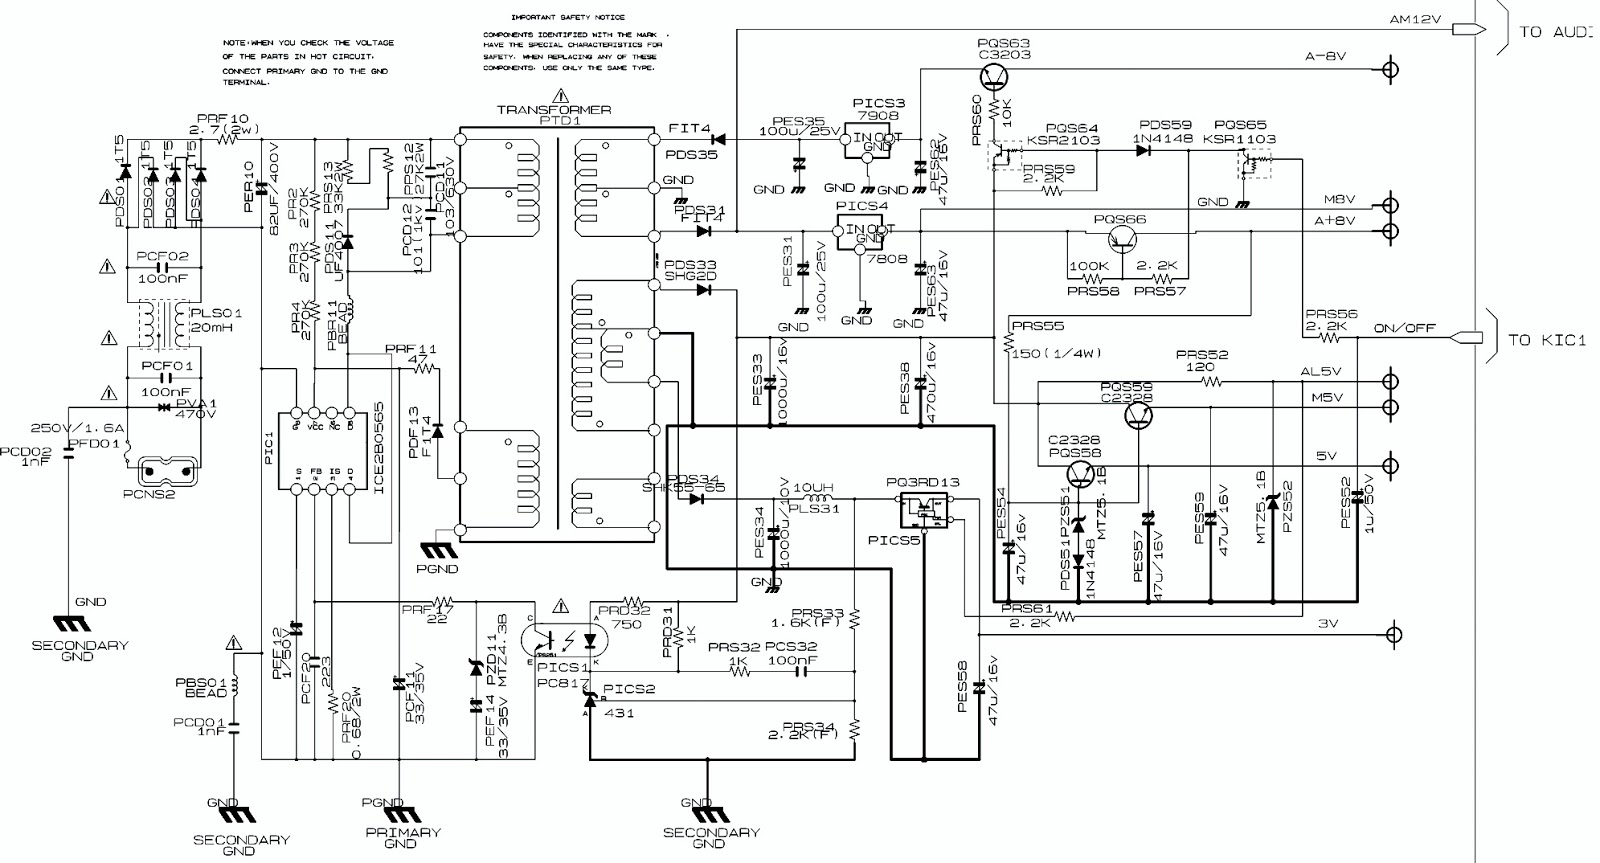 small resolution of  new from this samsung tv schematic diagram circuit diagrams and download service repair manuals and schematic diagrams xmid service manual dvd